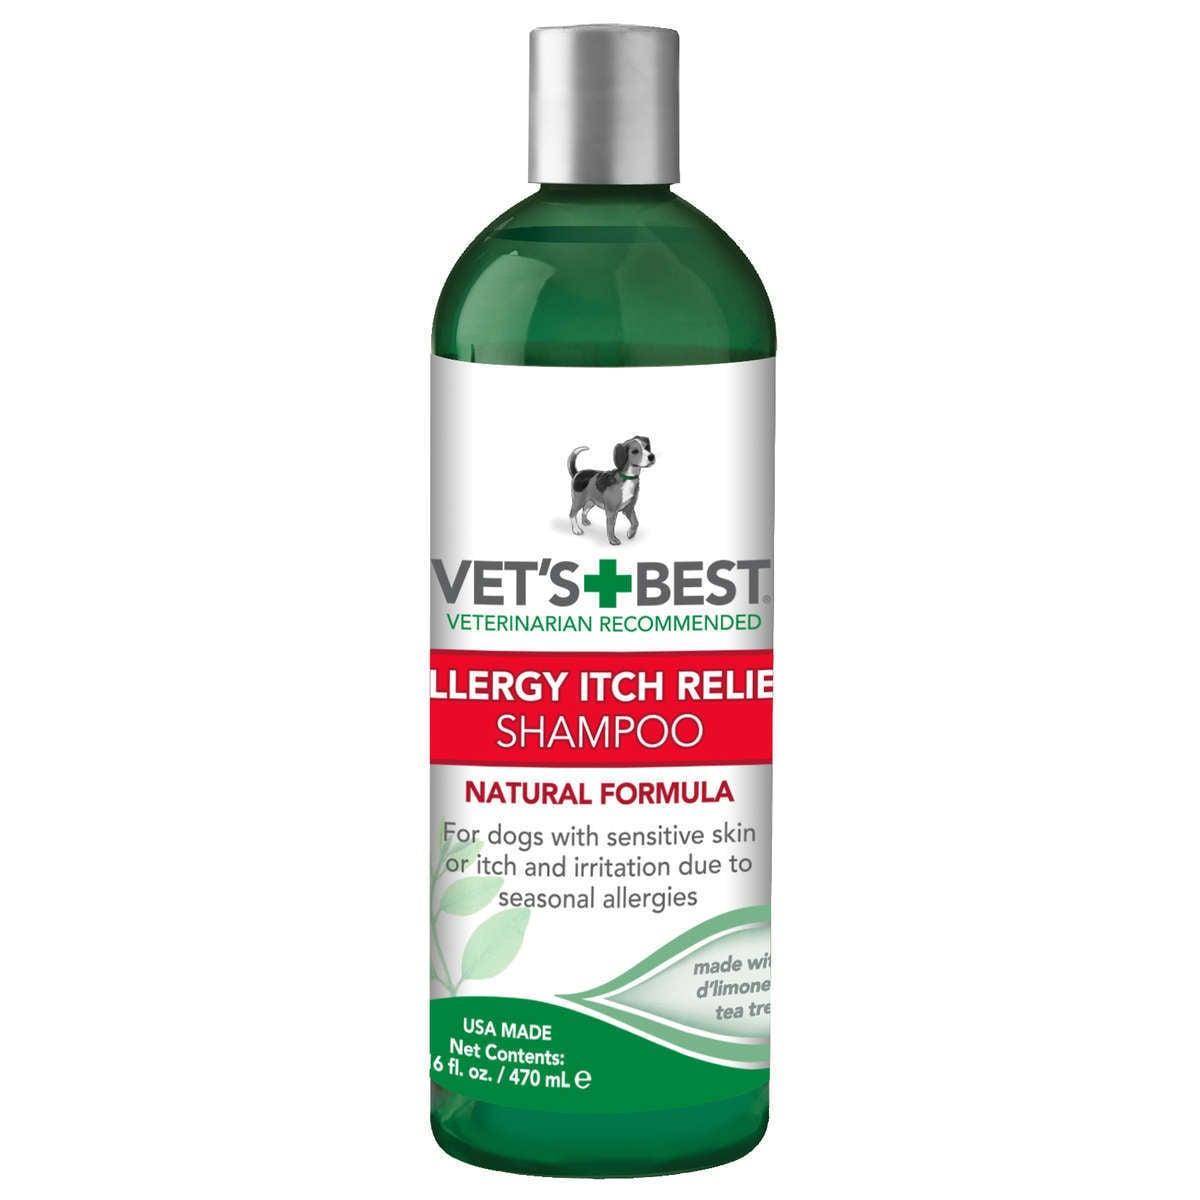 Vet's Best Allergy Itch Relief Dog Shampoo (16 ounces), Grey